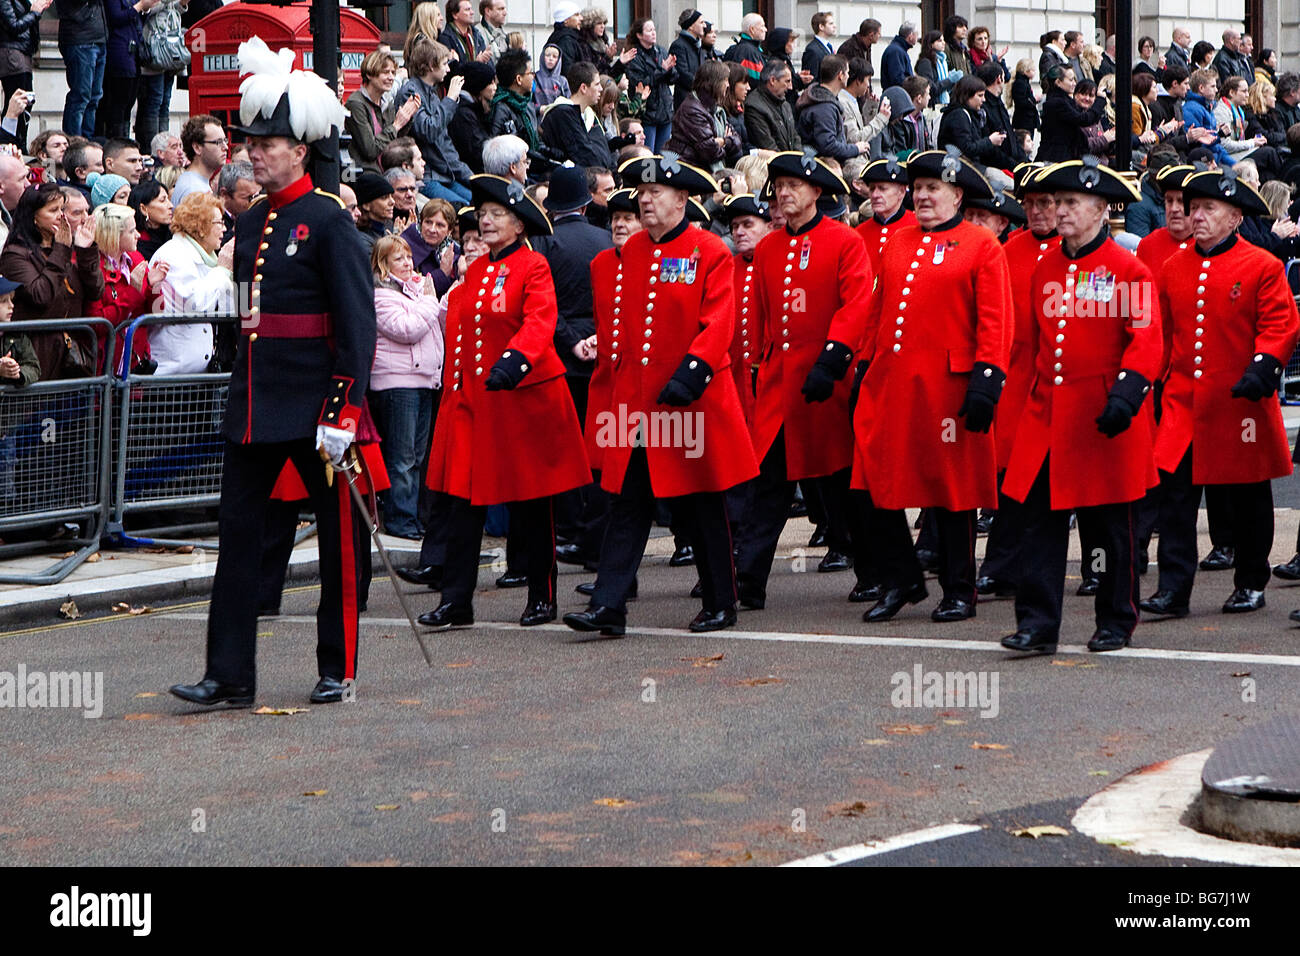 Remembrance Day Parade in London - Stock Image